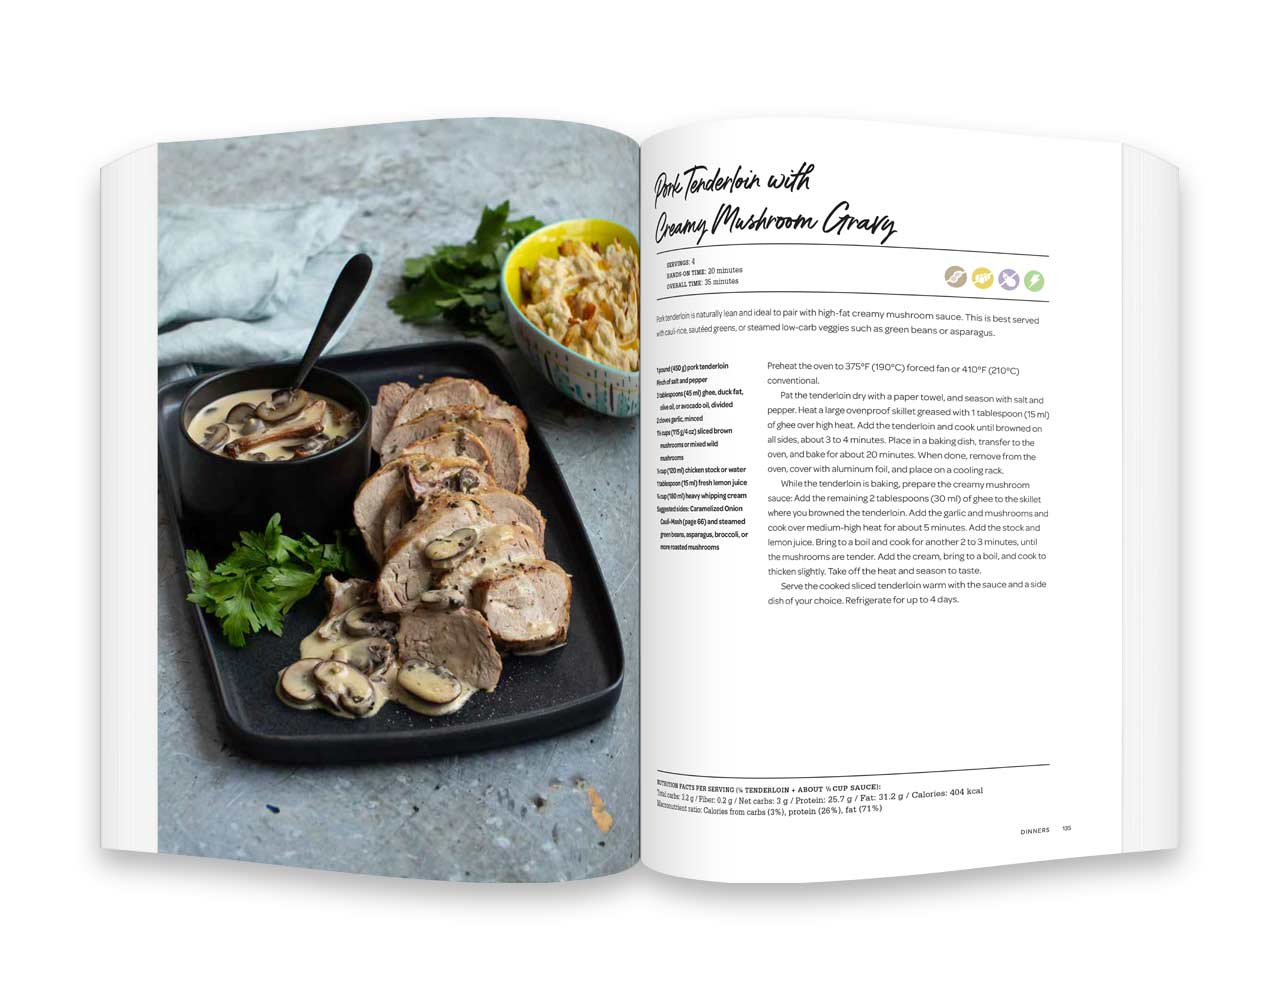 Announcing my New Keto Simple Cookbook!